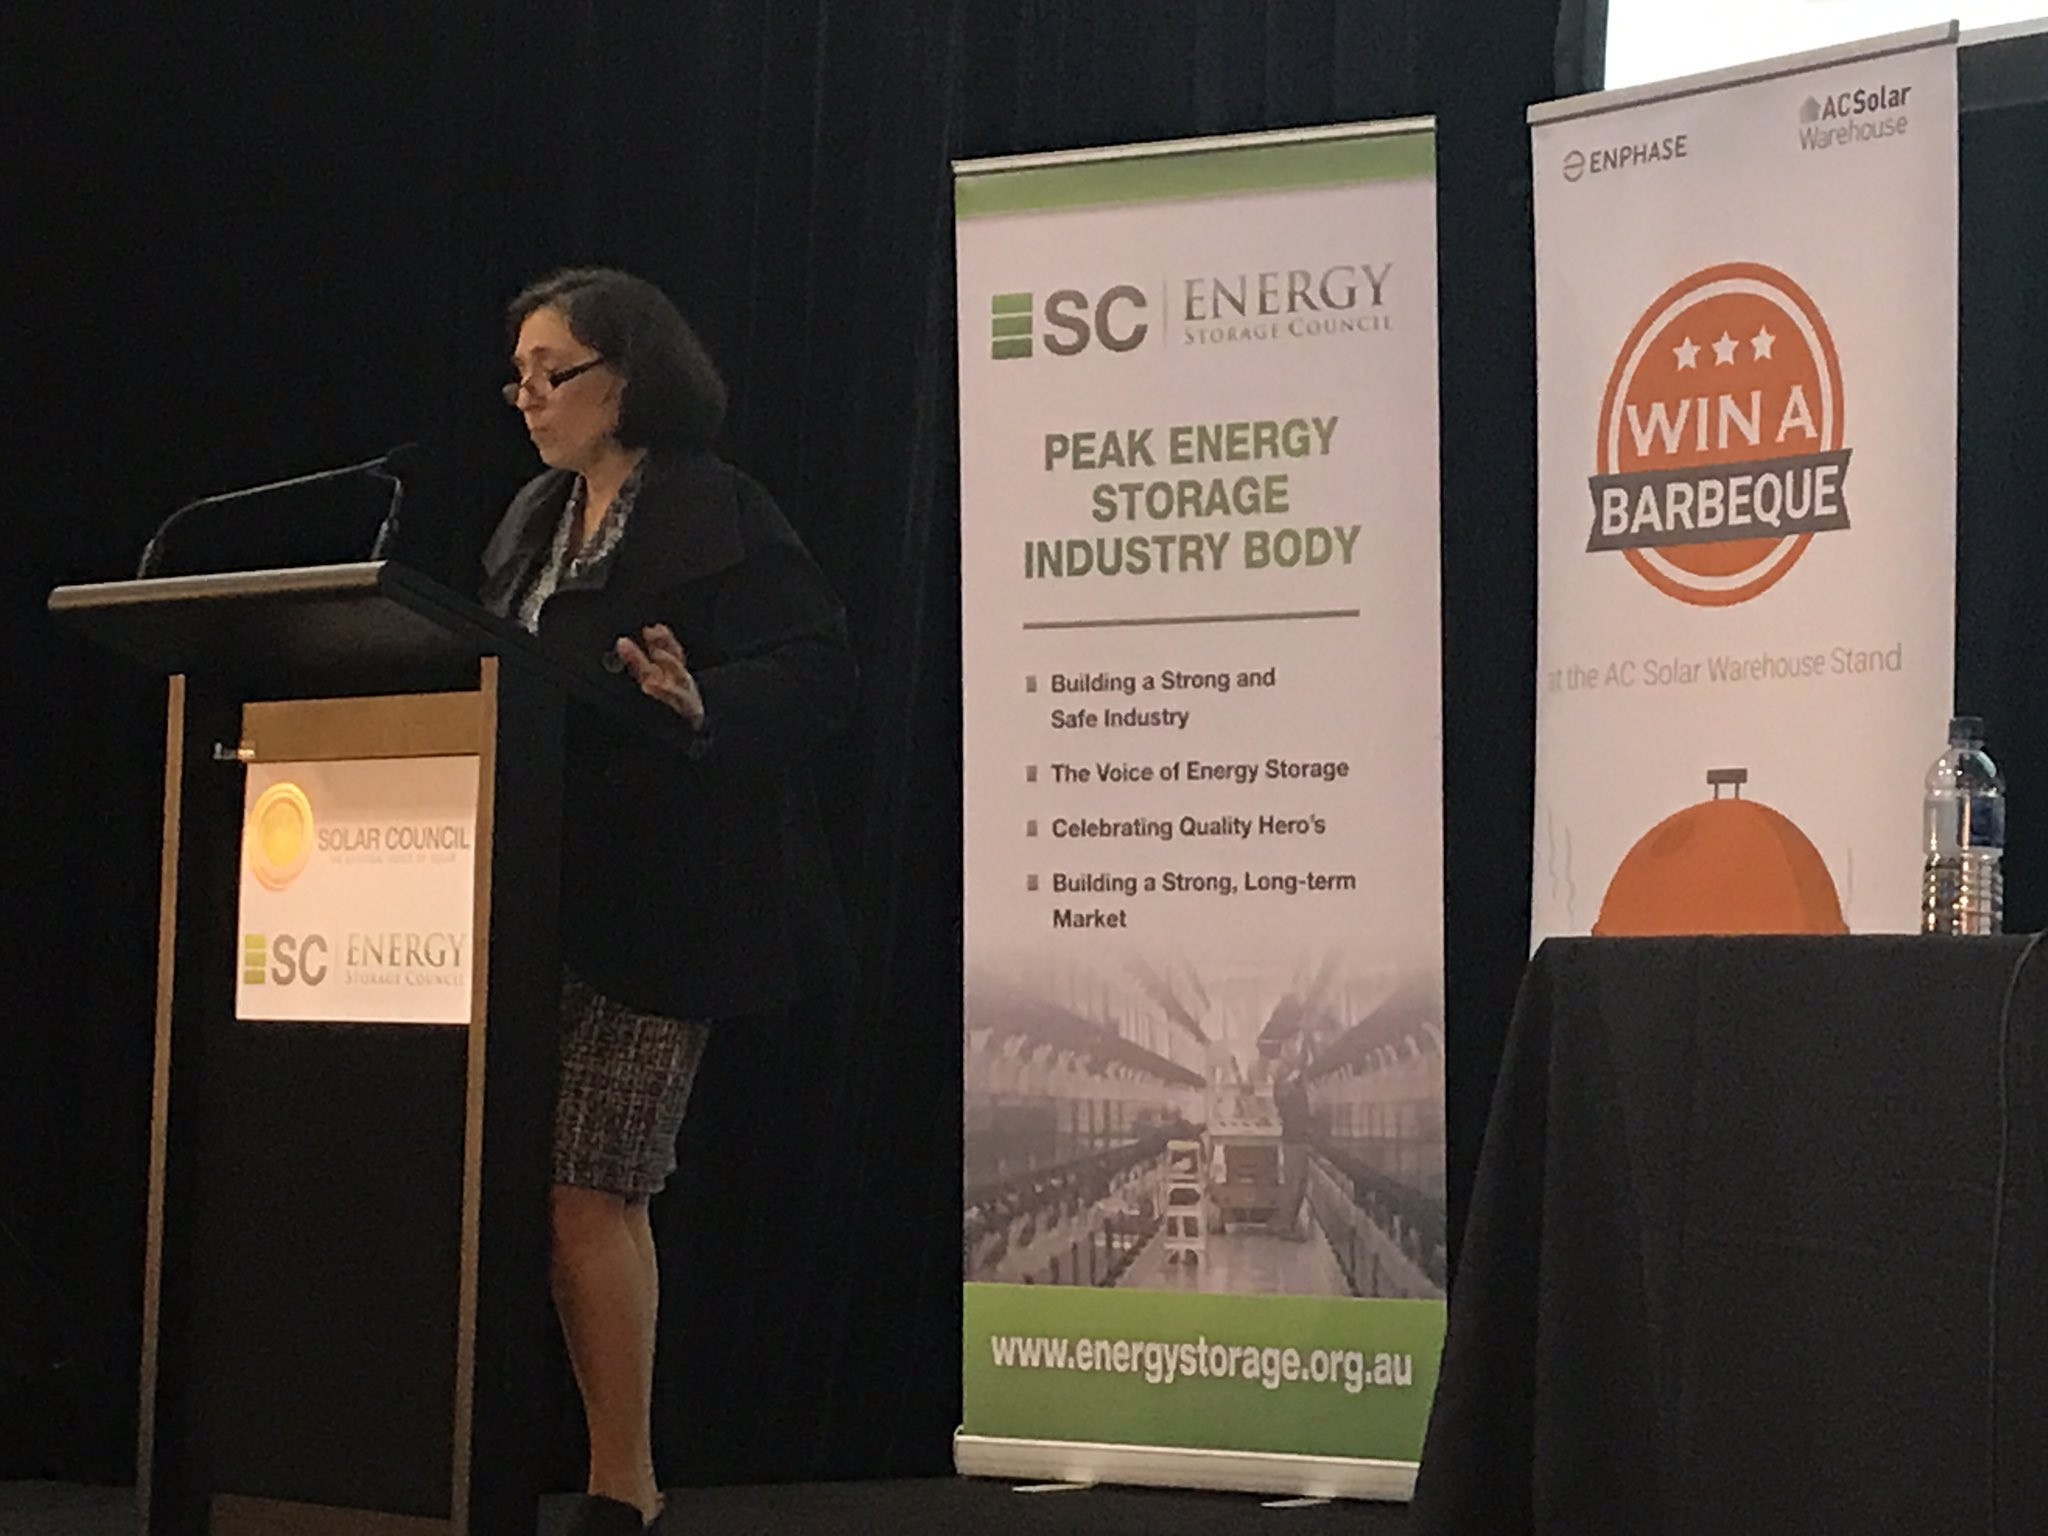 """""""Importance of investment, reliability and security"""" in managing transition to clean energy future. @LilyDAmbrosioMP #SolarStorage2017 https://t.co/ifxlPA62LH"""